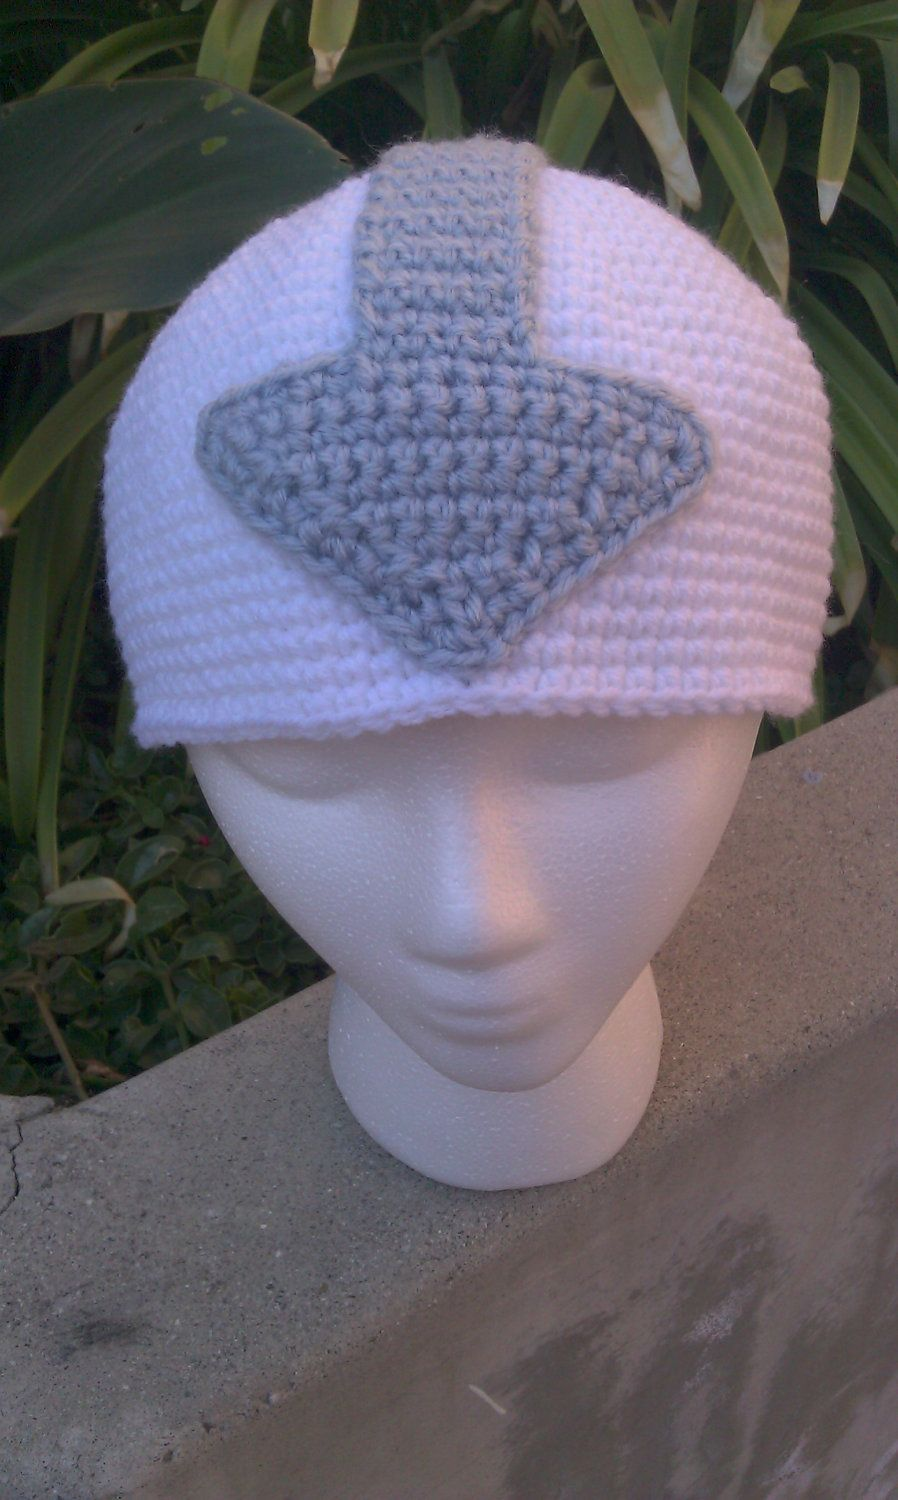 Avatar the last airbender aang inspired arrow hat the